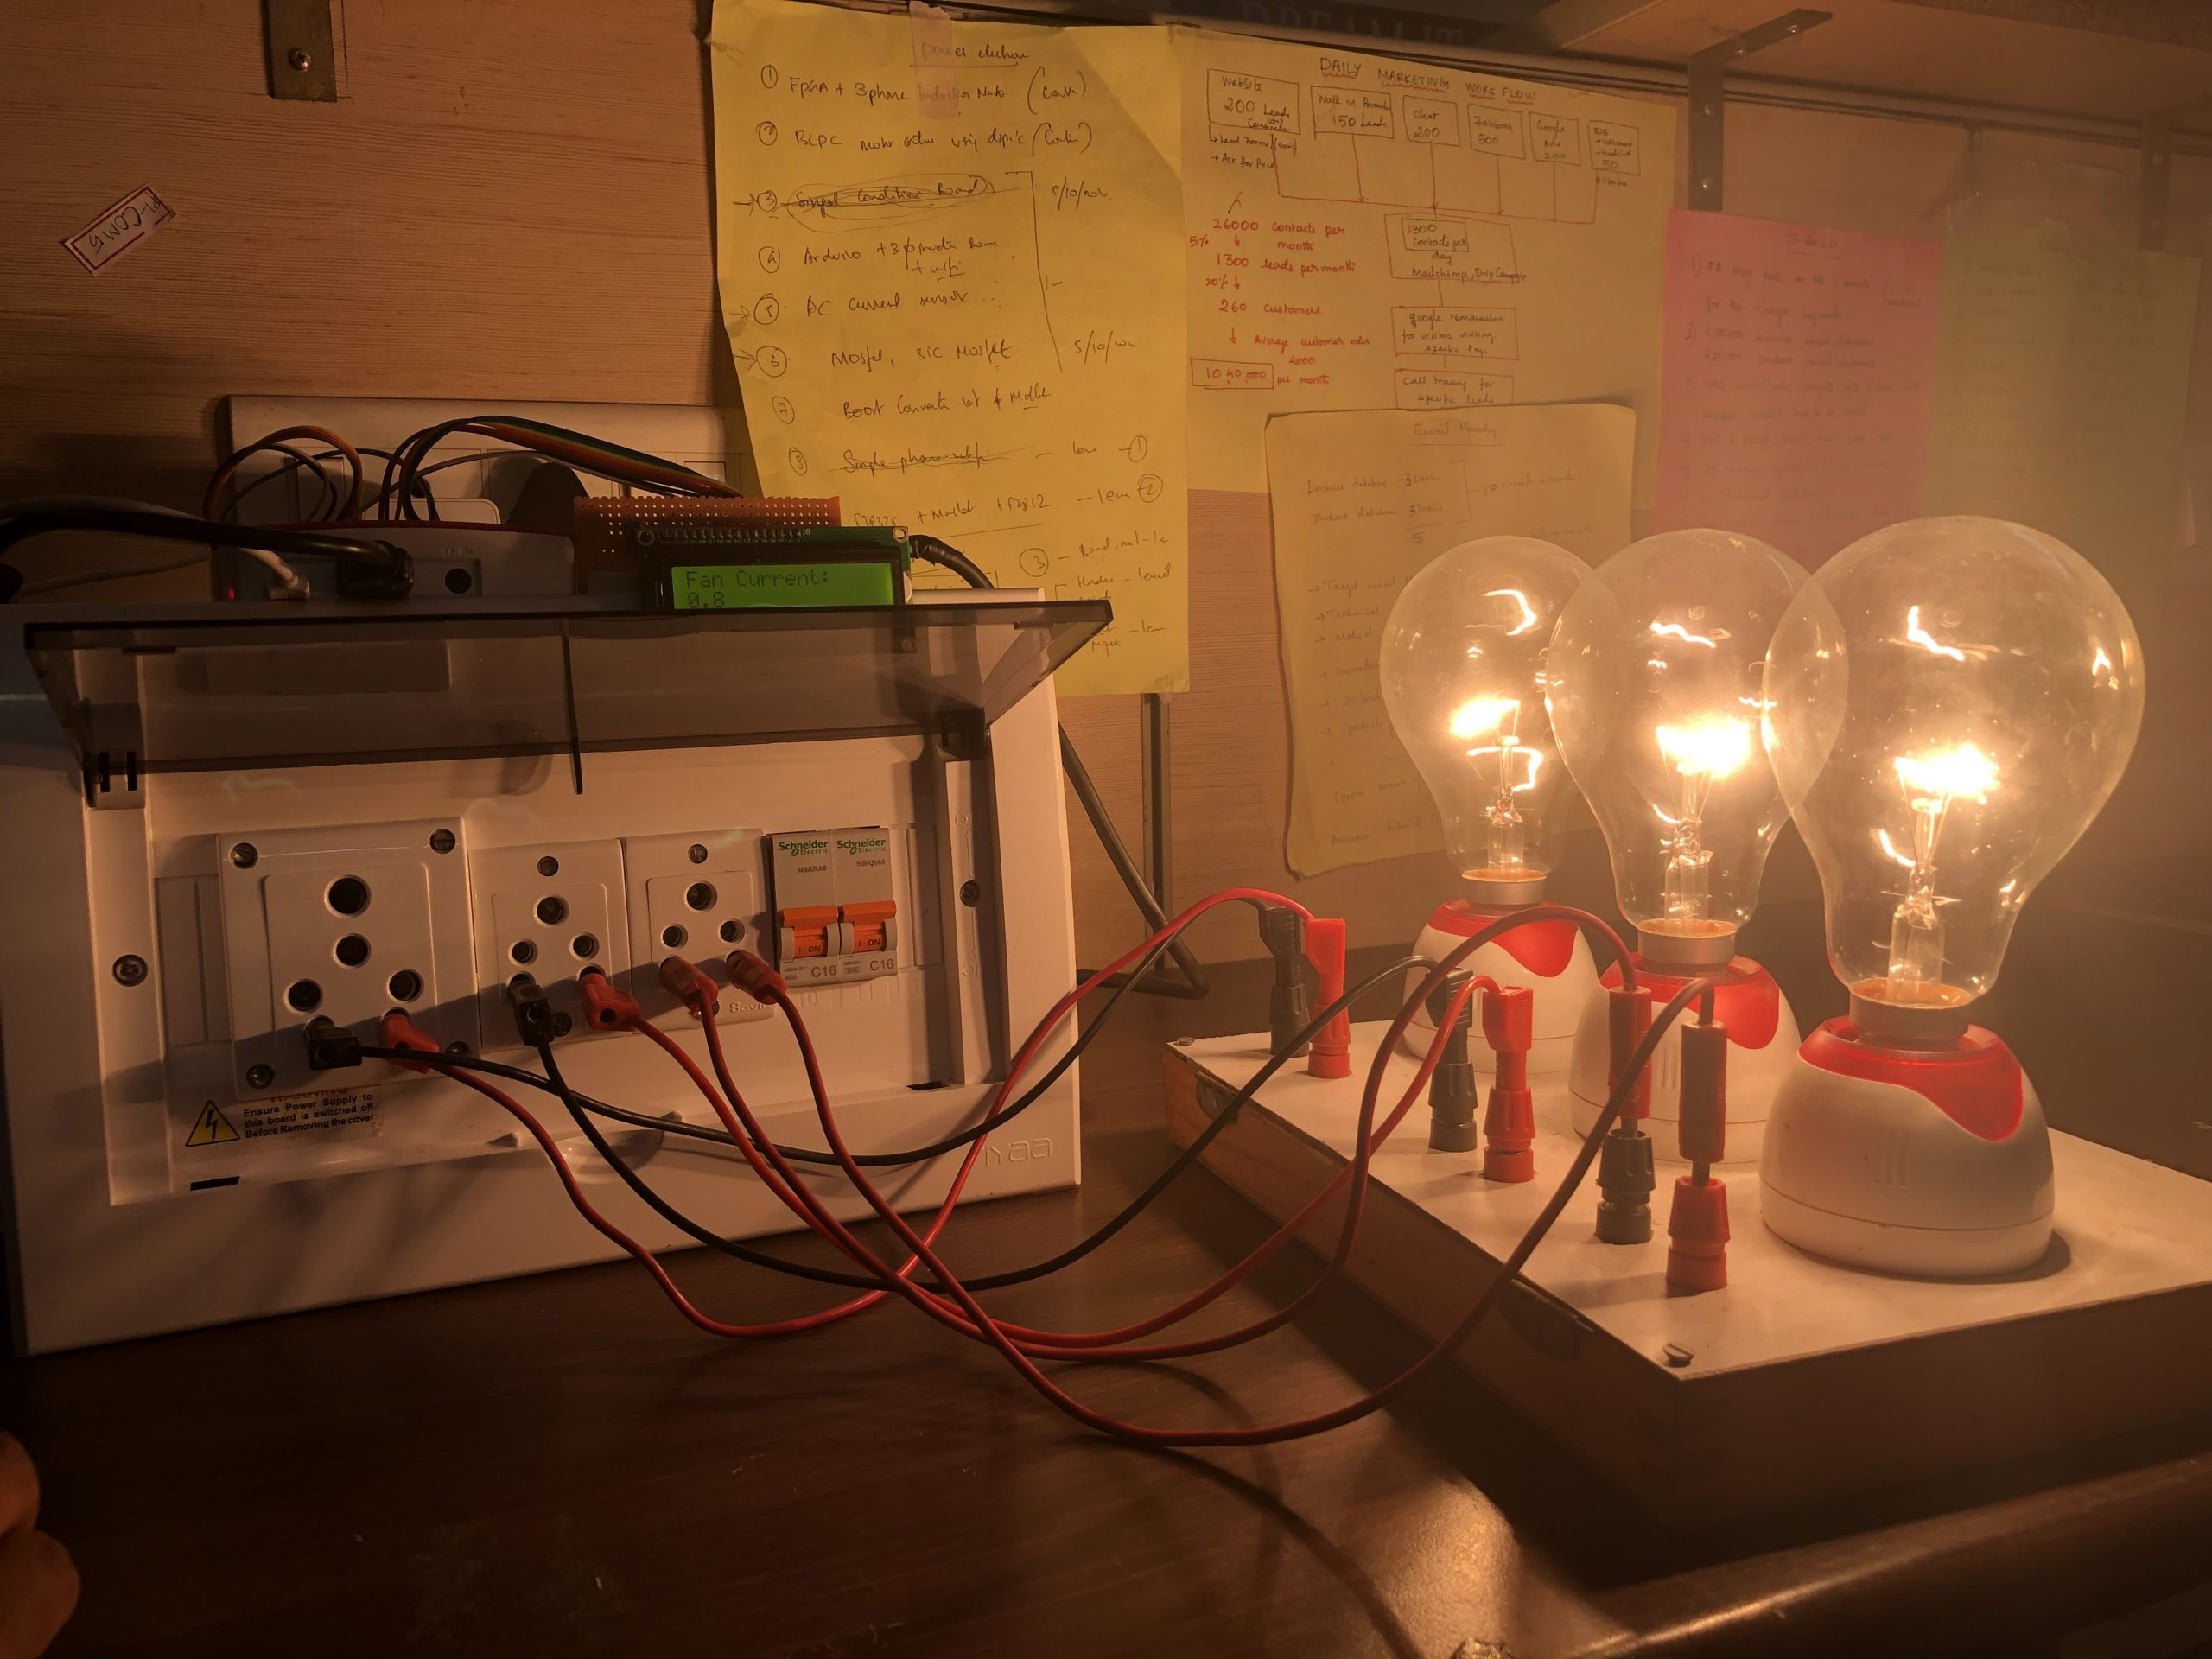 Real-Time Power Management Using Raspberry pi